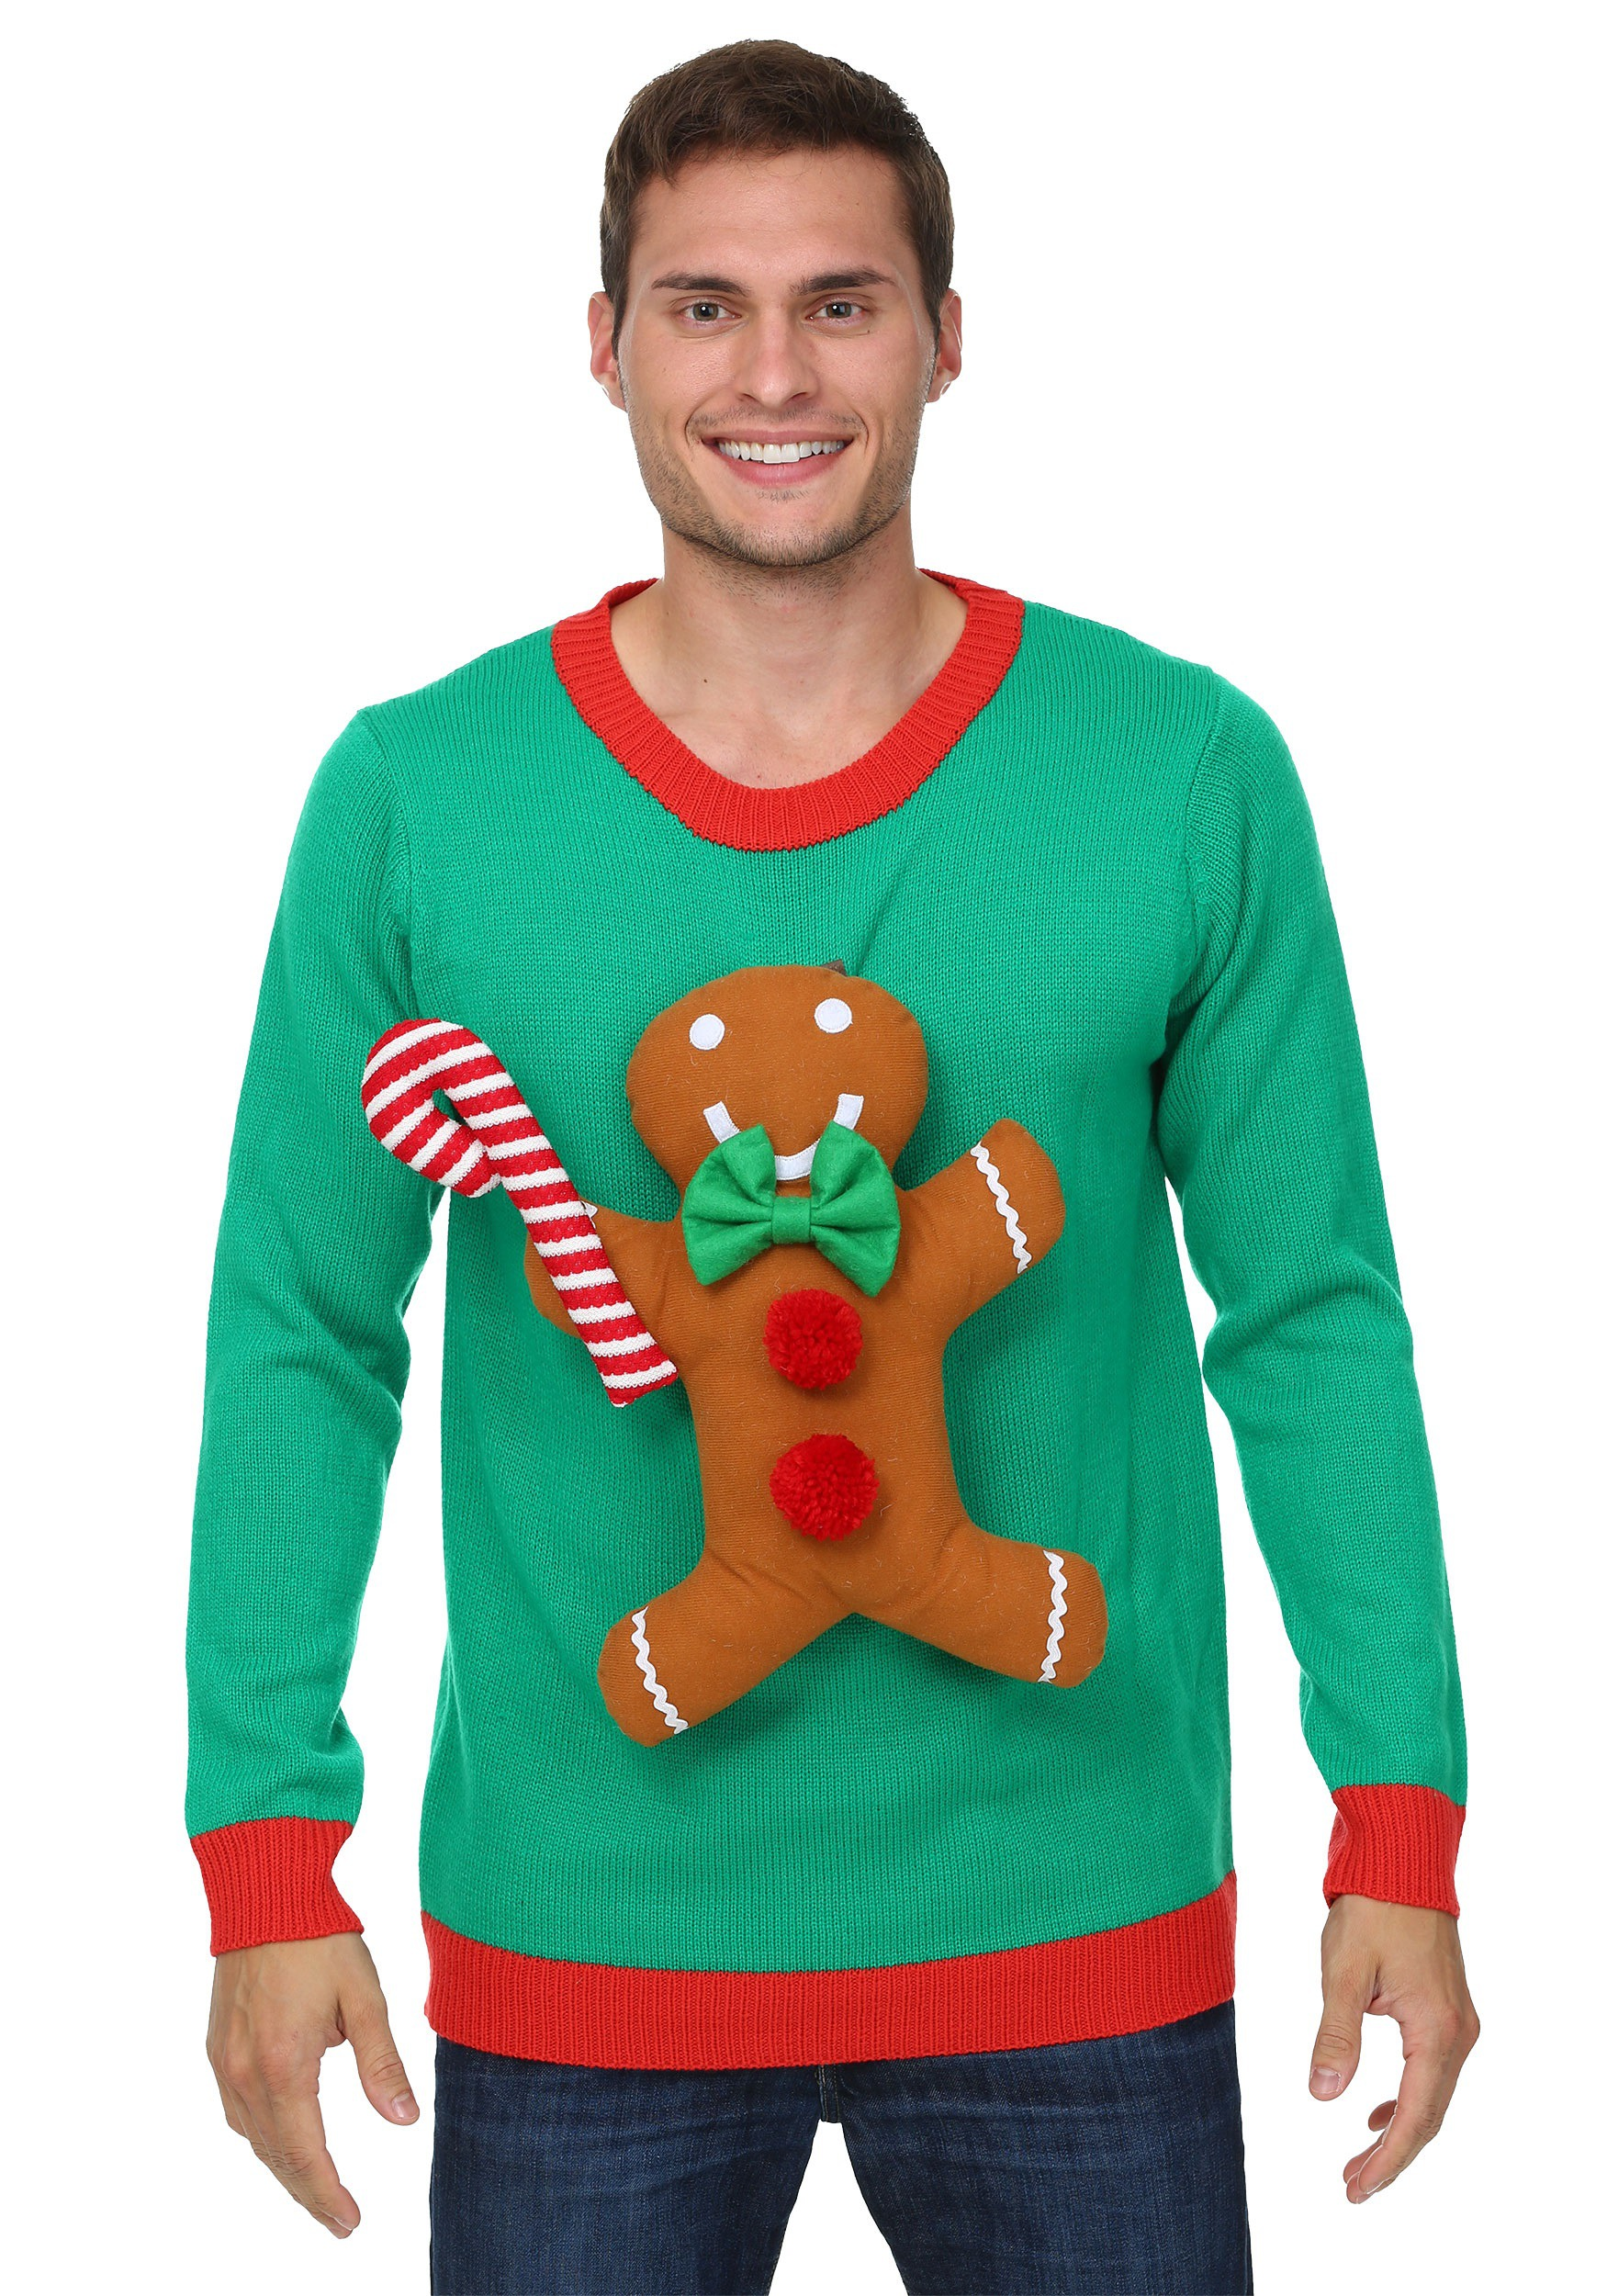 3D Gingerbread Man Ugly Christmas Sweater